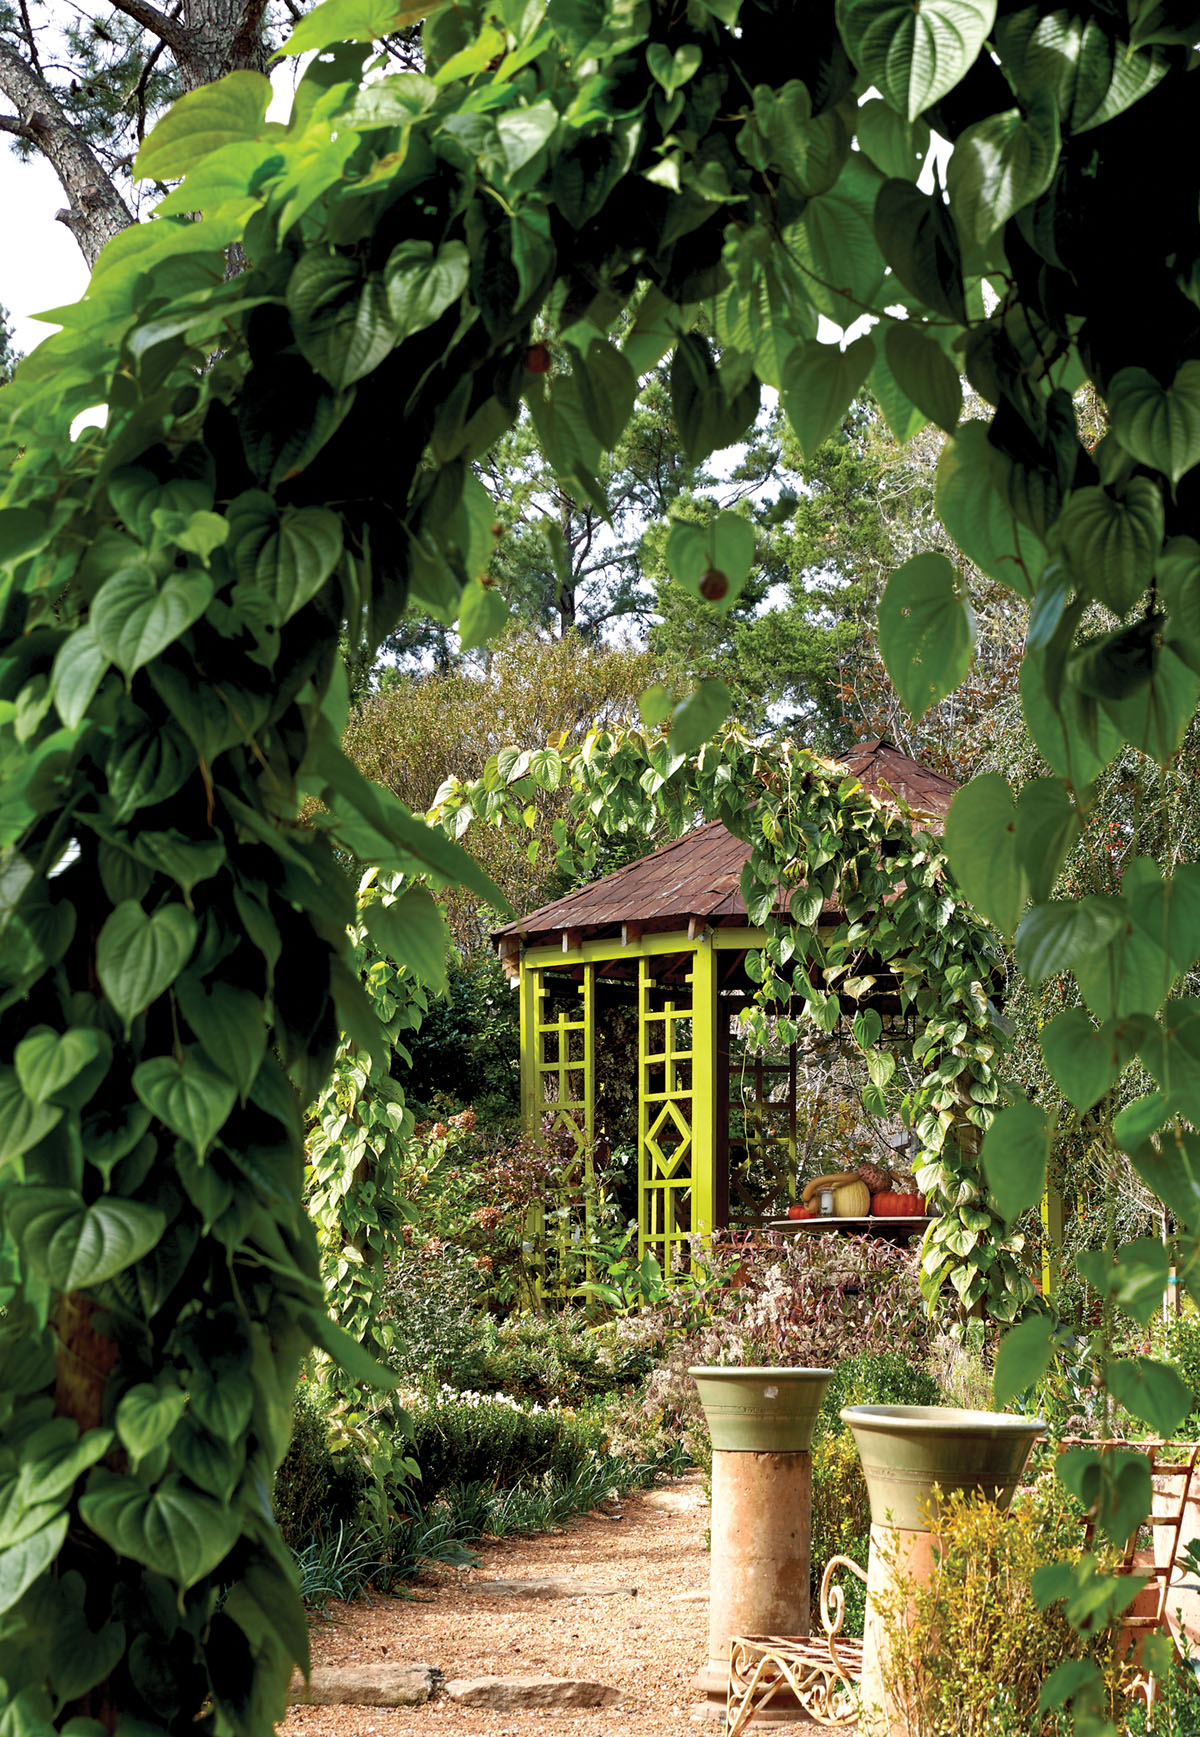 Lush, vine covered arches frame a path leading to a garden folly at Keith Robinson's home at Redwine